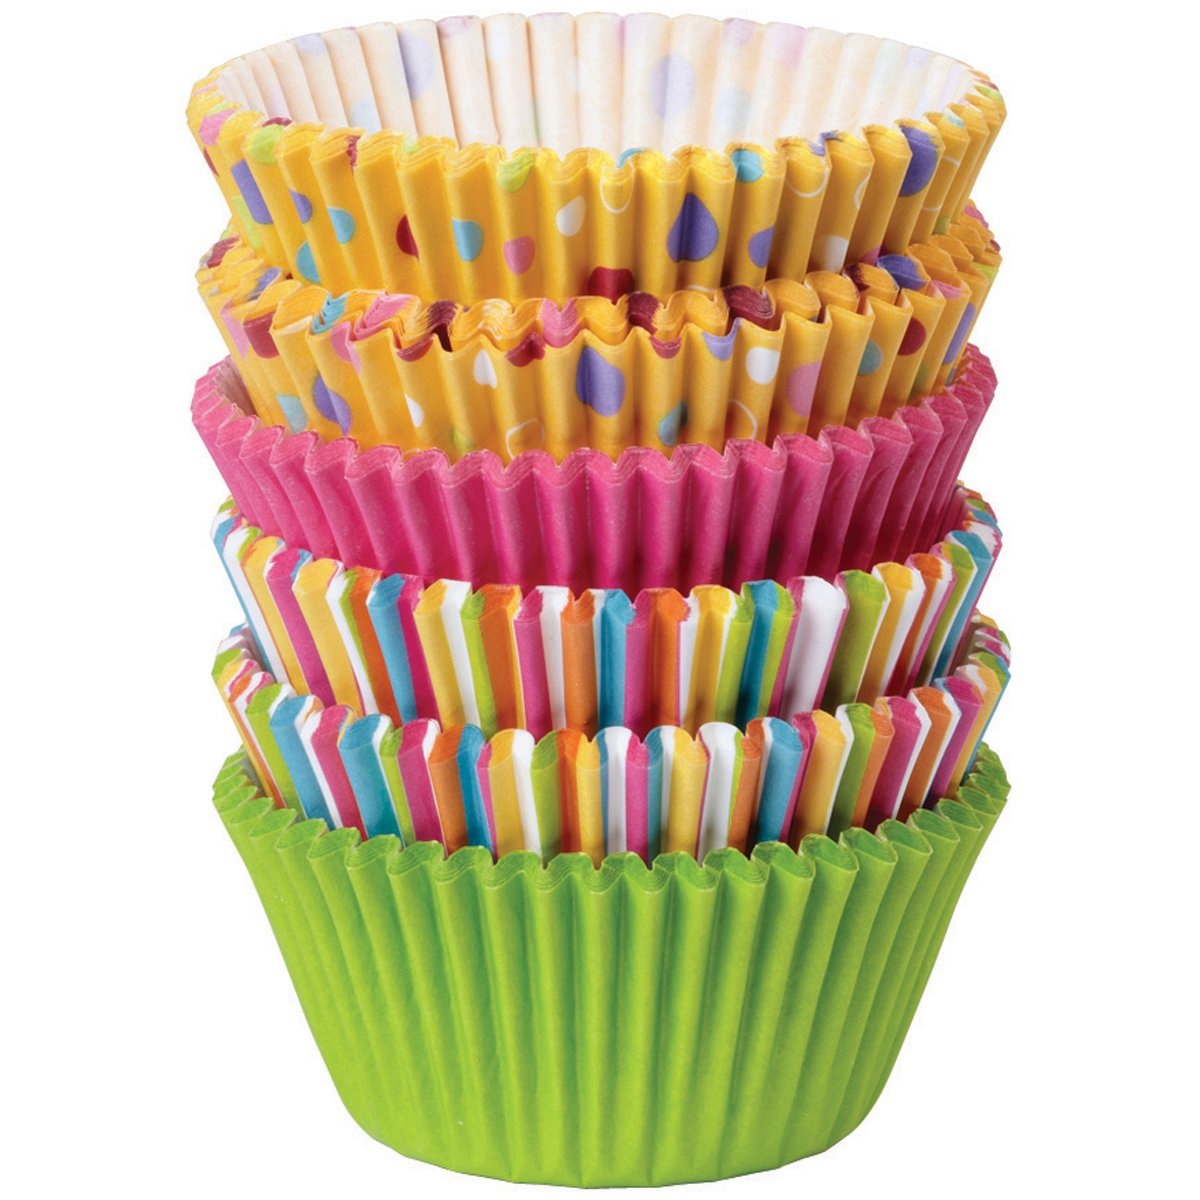 150-Pack Baking Cup